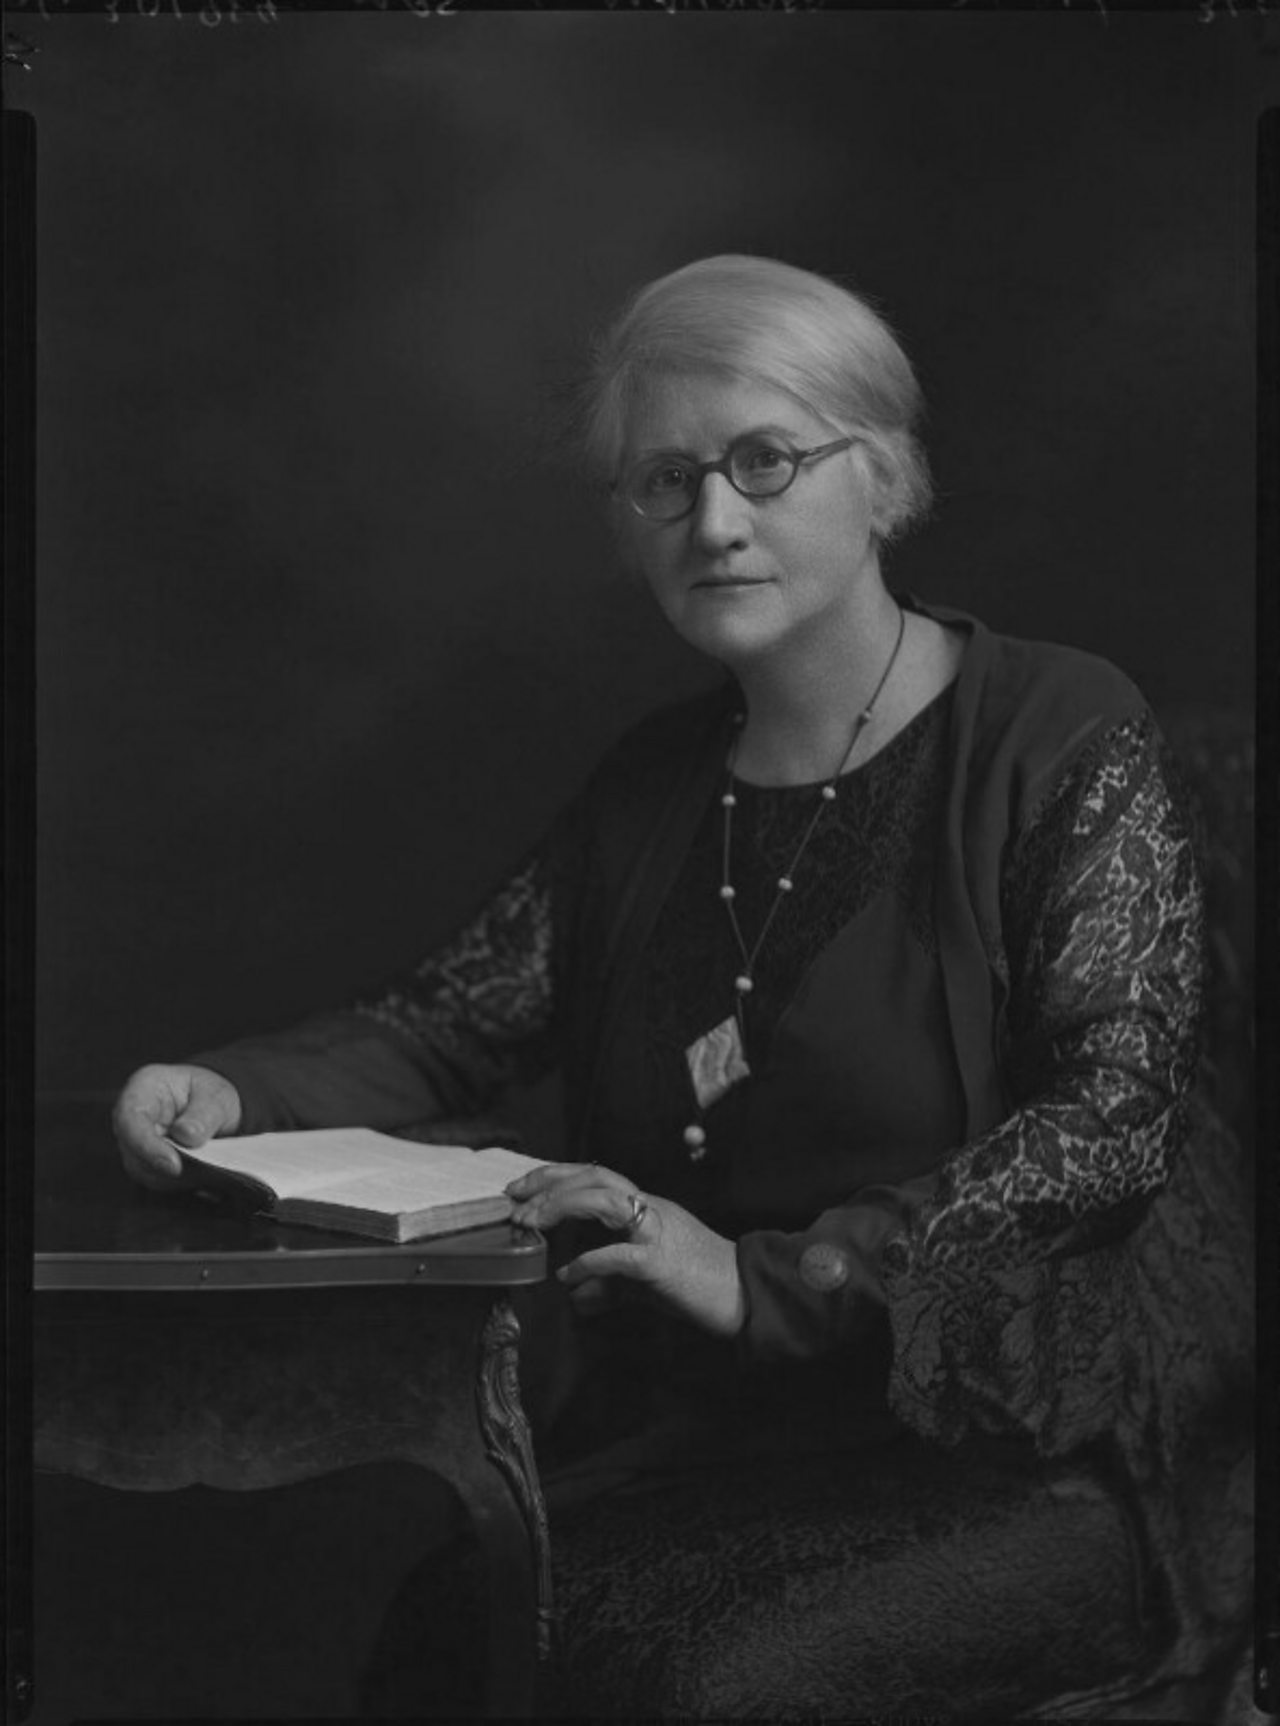 Photograph of the astronomer Annie Scott Dill Maunder